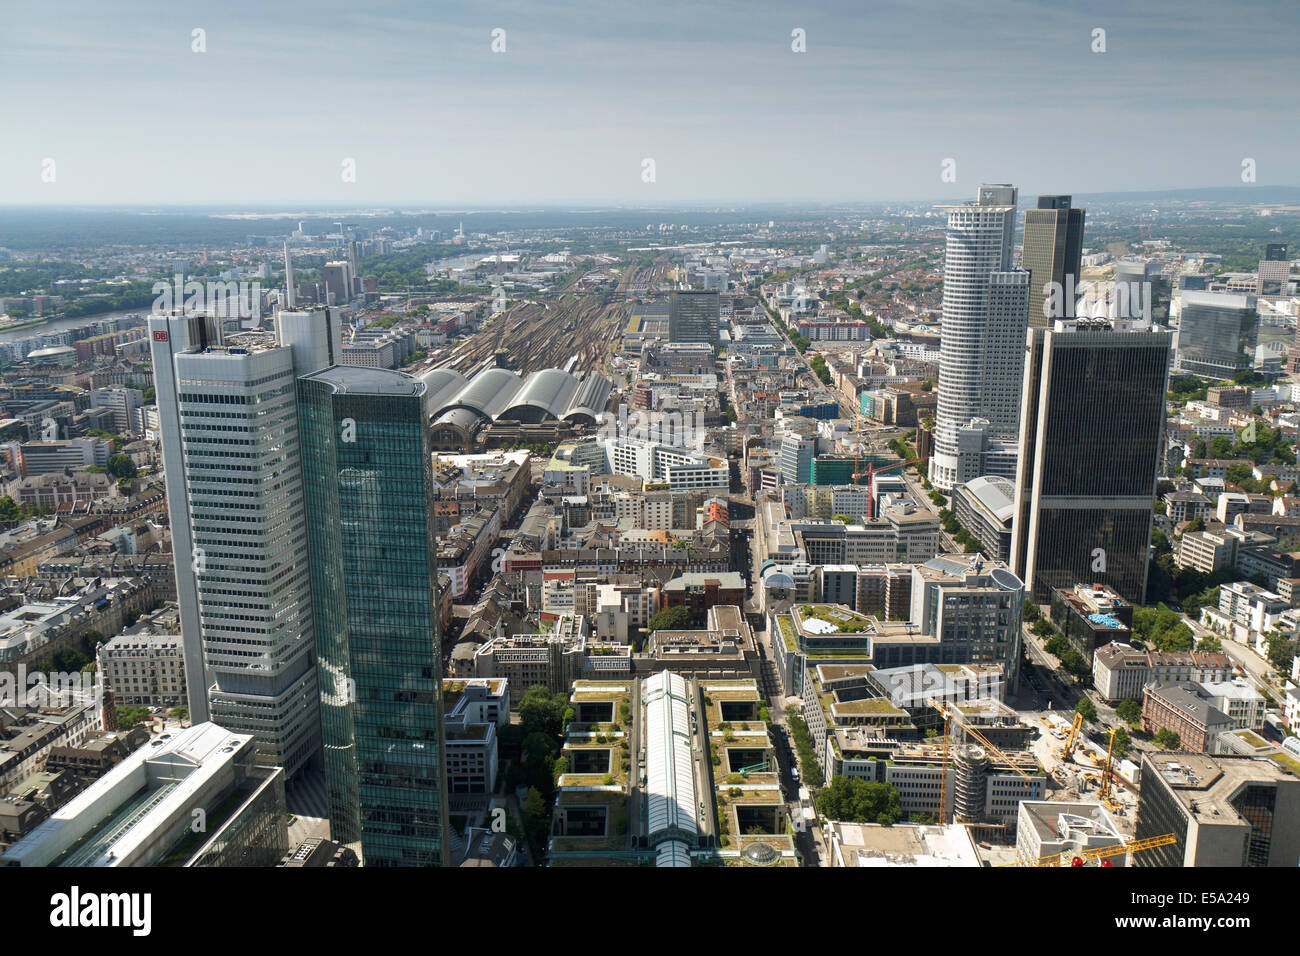 Shot looking across over Frankfurt from the Main Tower with Frankfurt airport on the horizon. - Stock Image